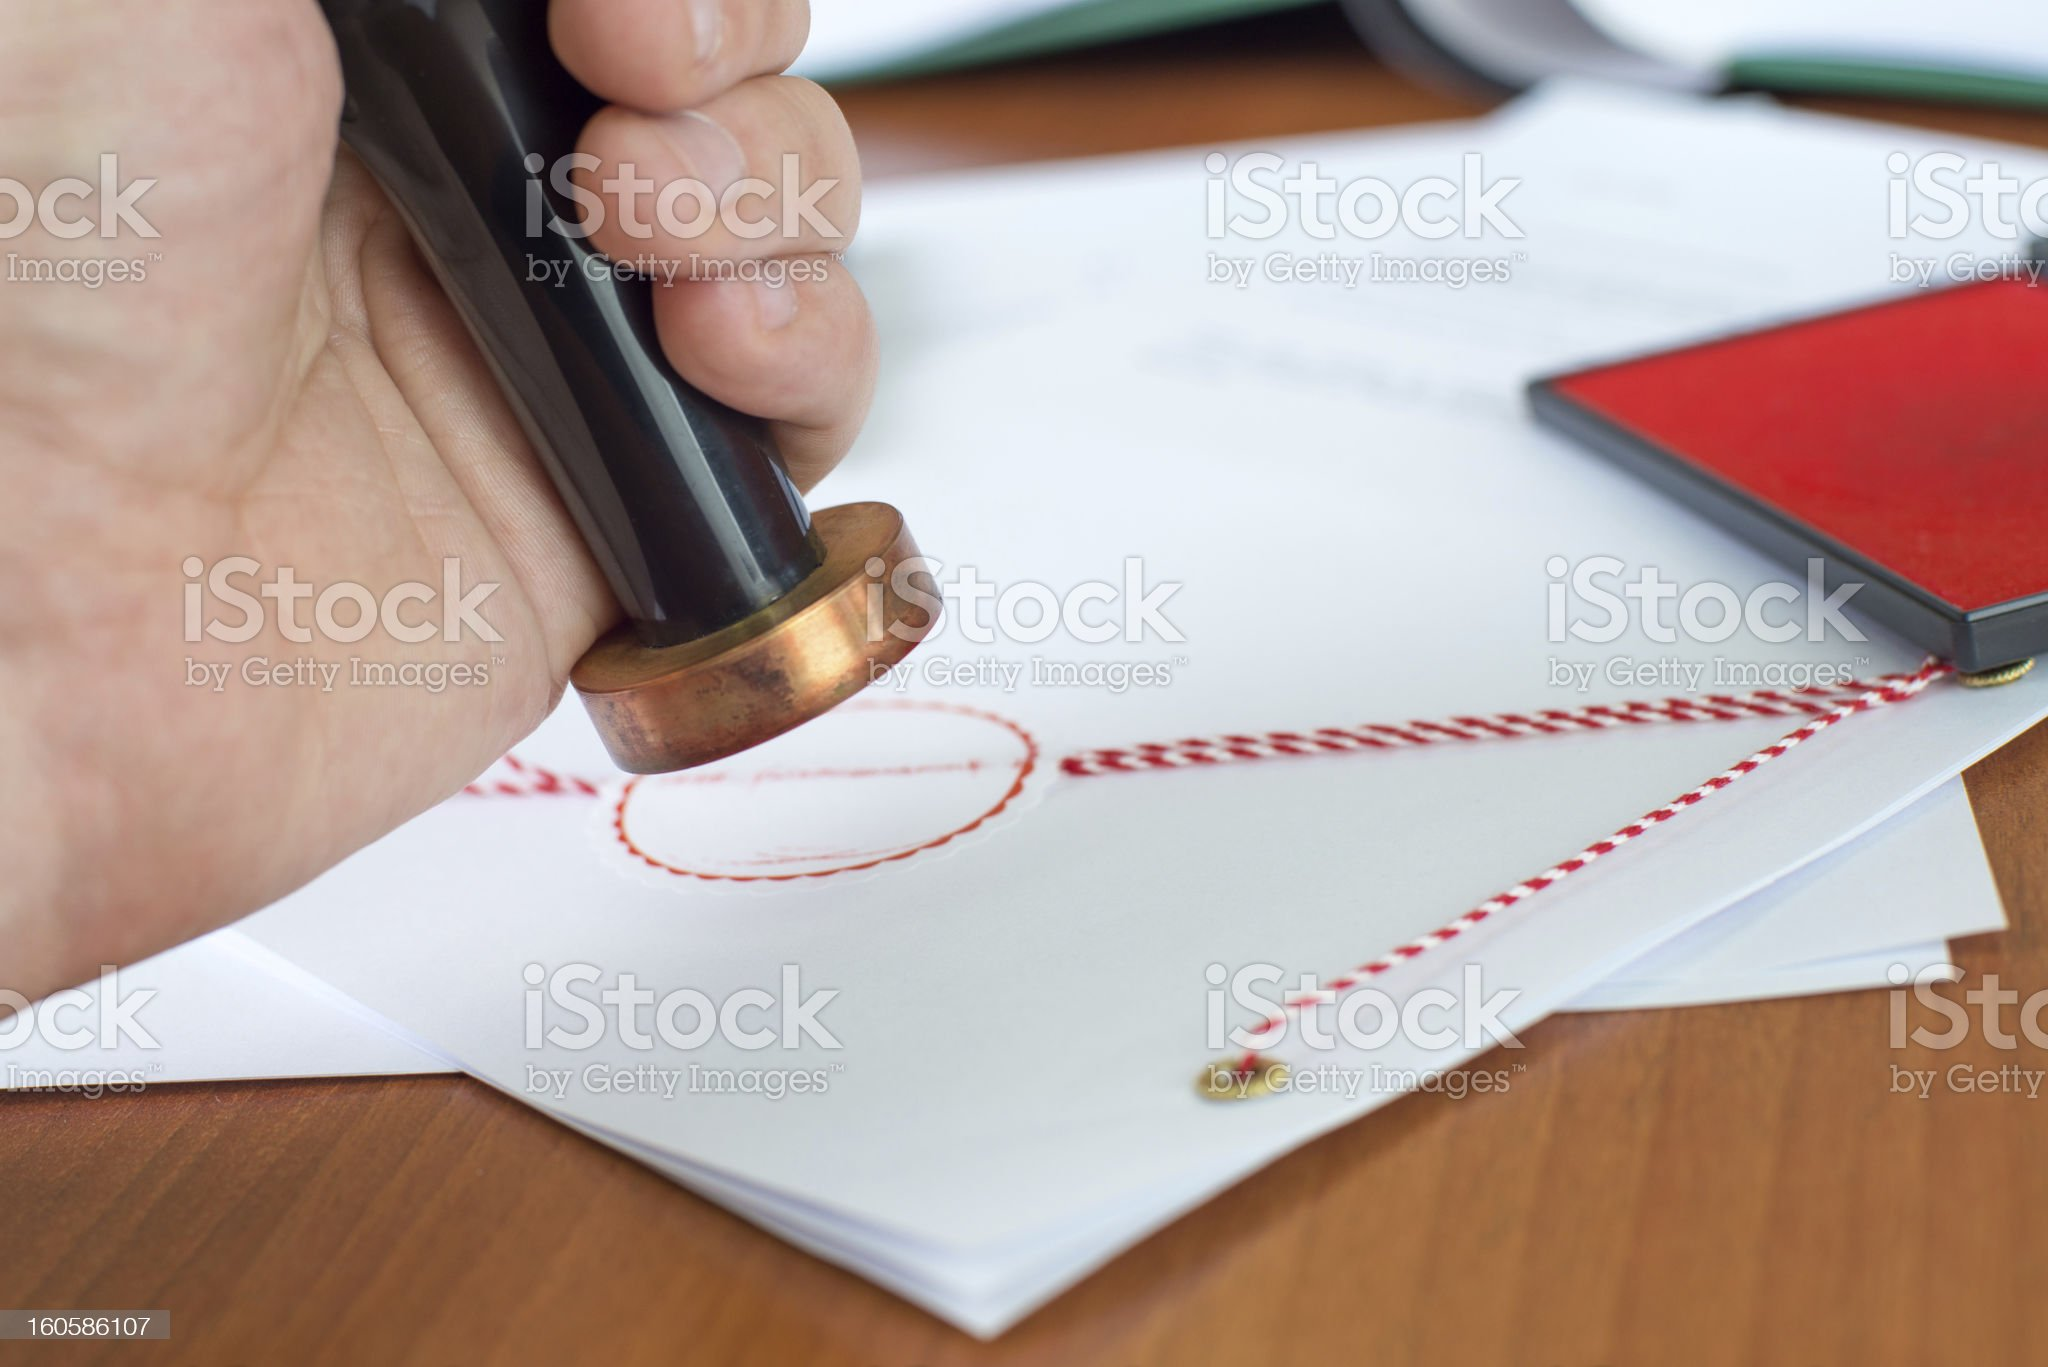 Close-up of notary stamping an important document royalty-free stock photo